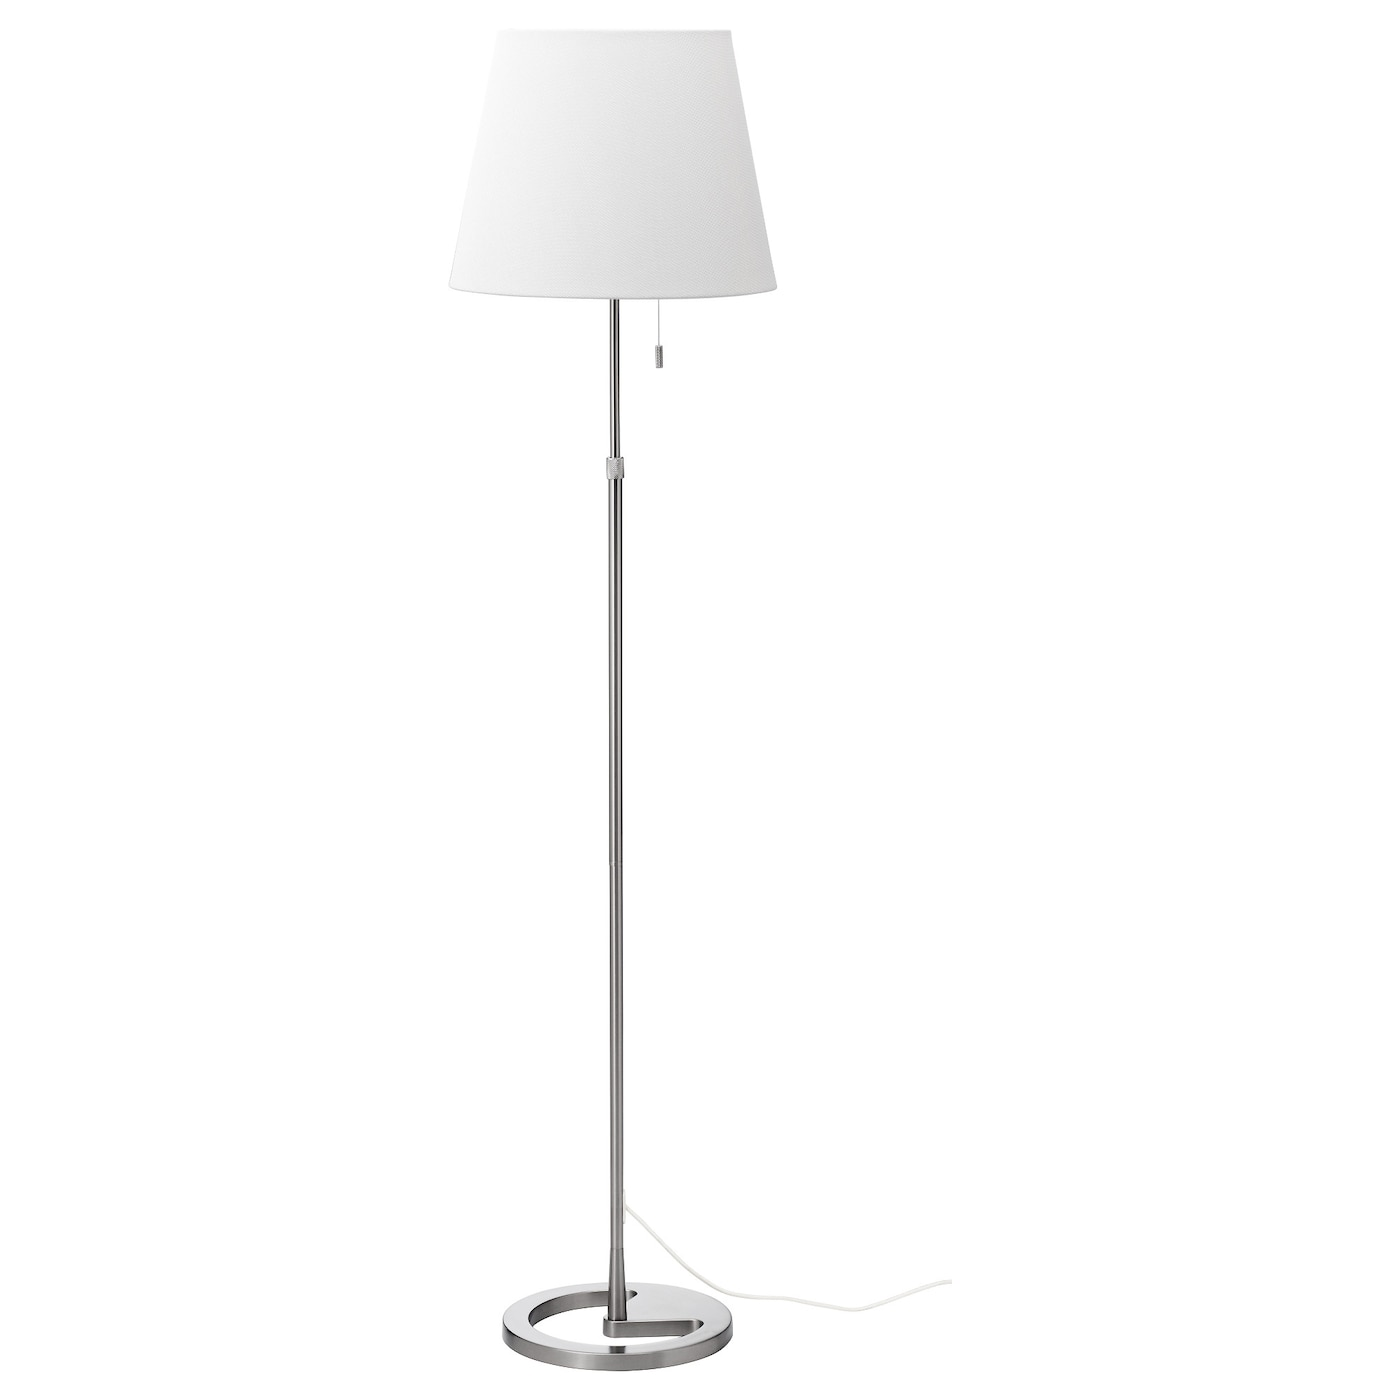 Ikea Kleiderschrank Robin Blau ~ IKEA NYFORS floor lamp The height is adjustable to suit your lighting